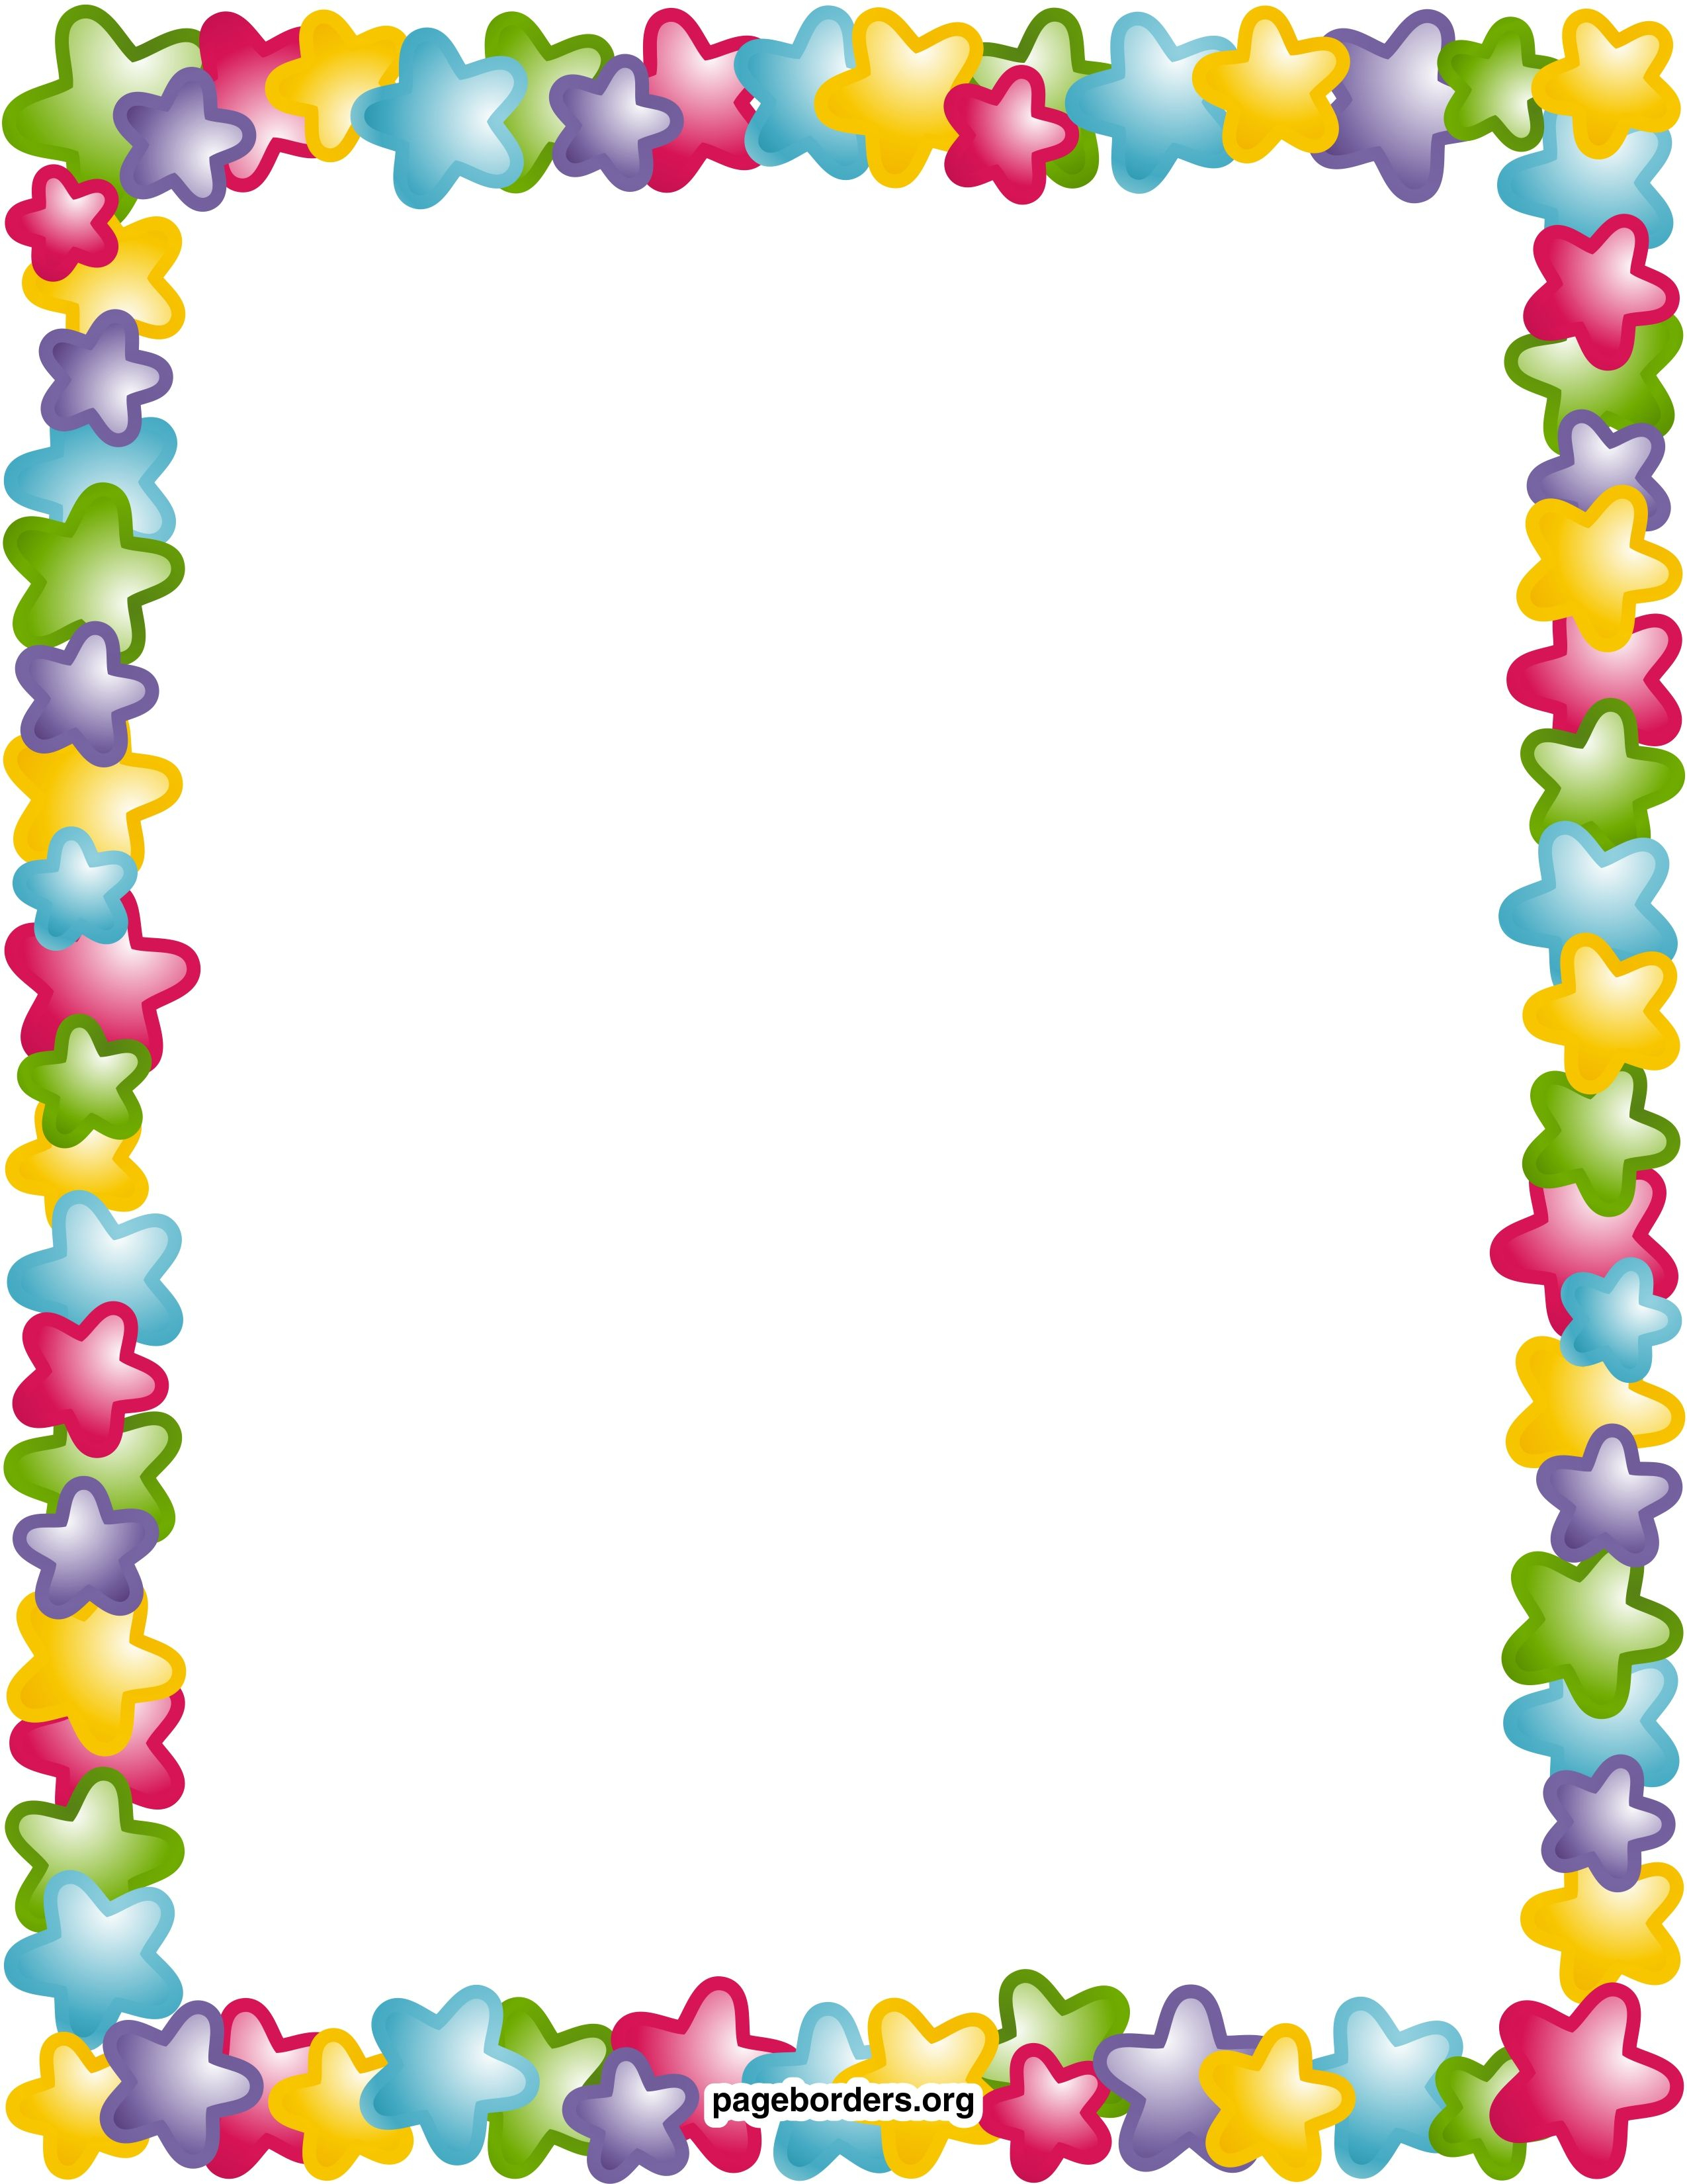 Free Printable Page Borders And Frames Image Gallery - Photonesta intended for Frame Birthday Calendar Templates Free